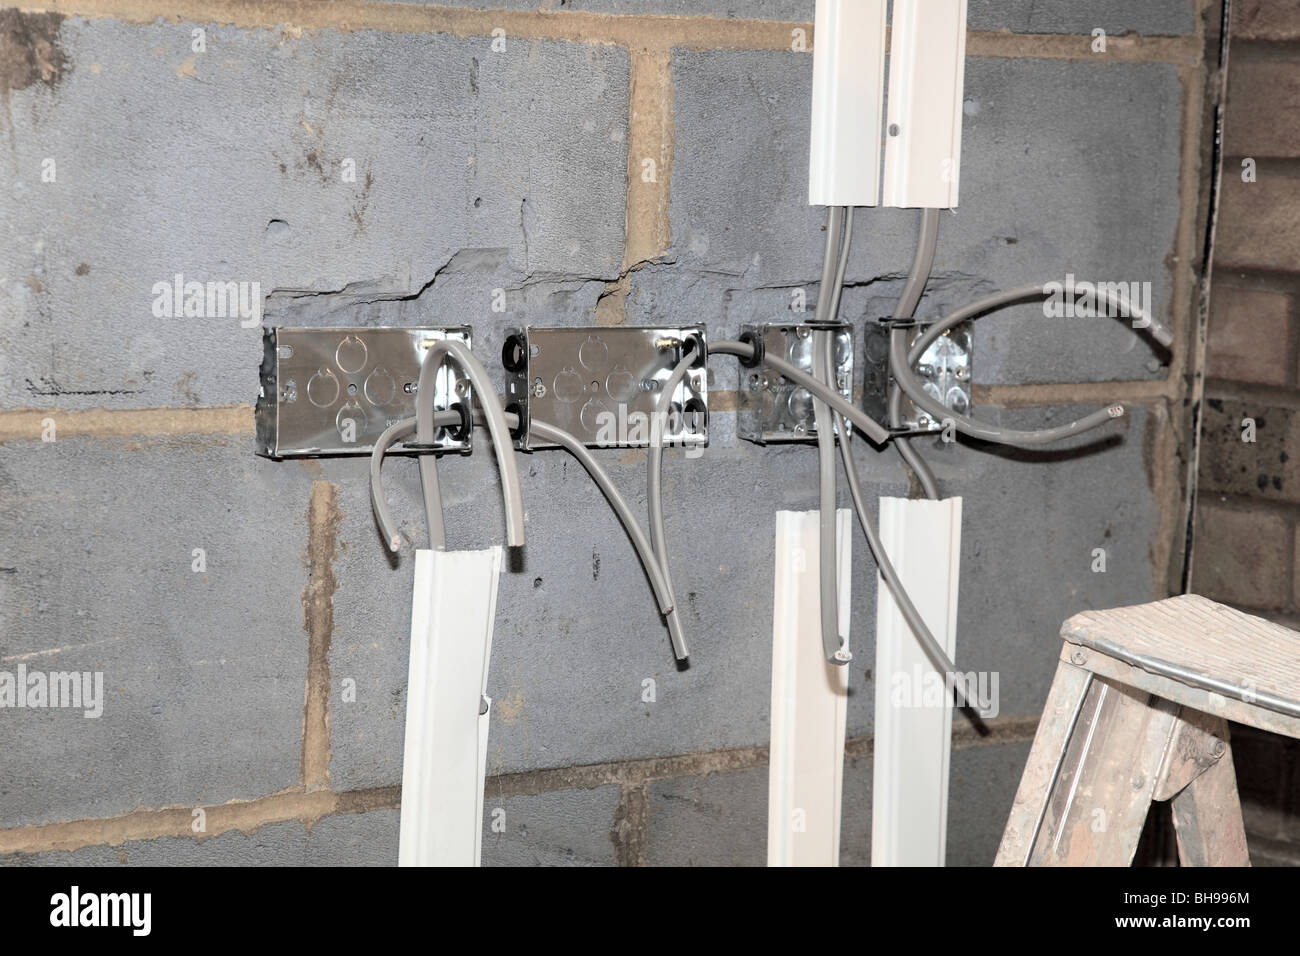 Wiring New House Extension Diy Enthusiasts Diagrams First Fix A Home Stock Photo 27864332 Alamy Rh Com